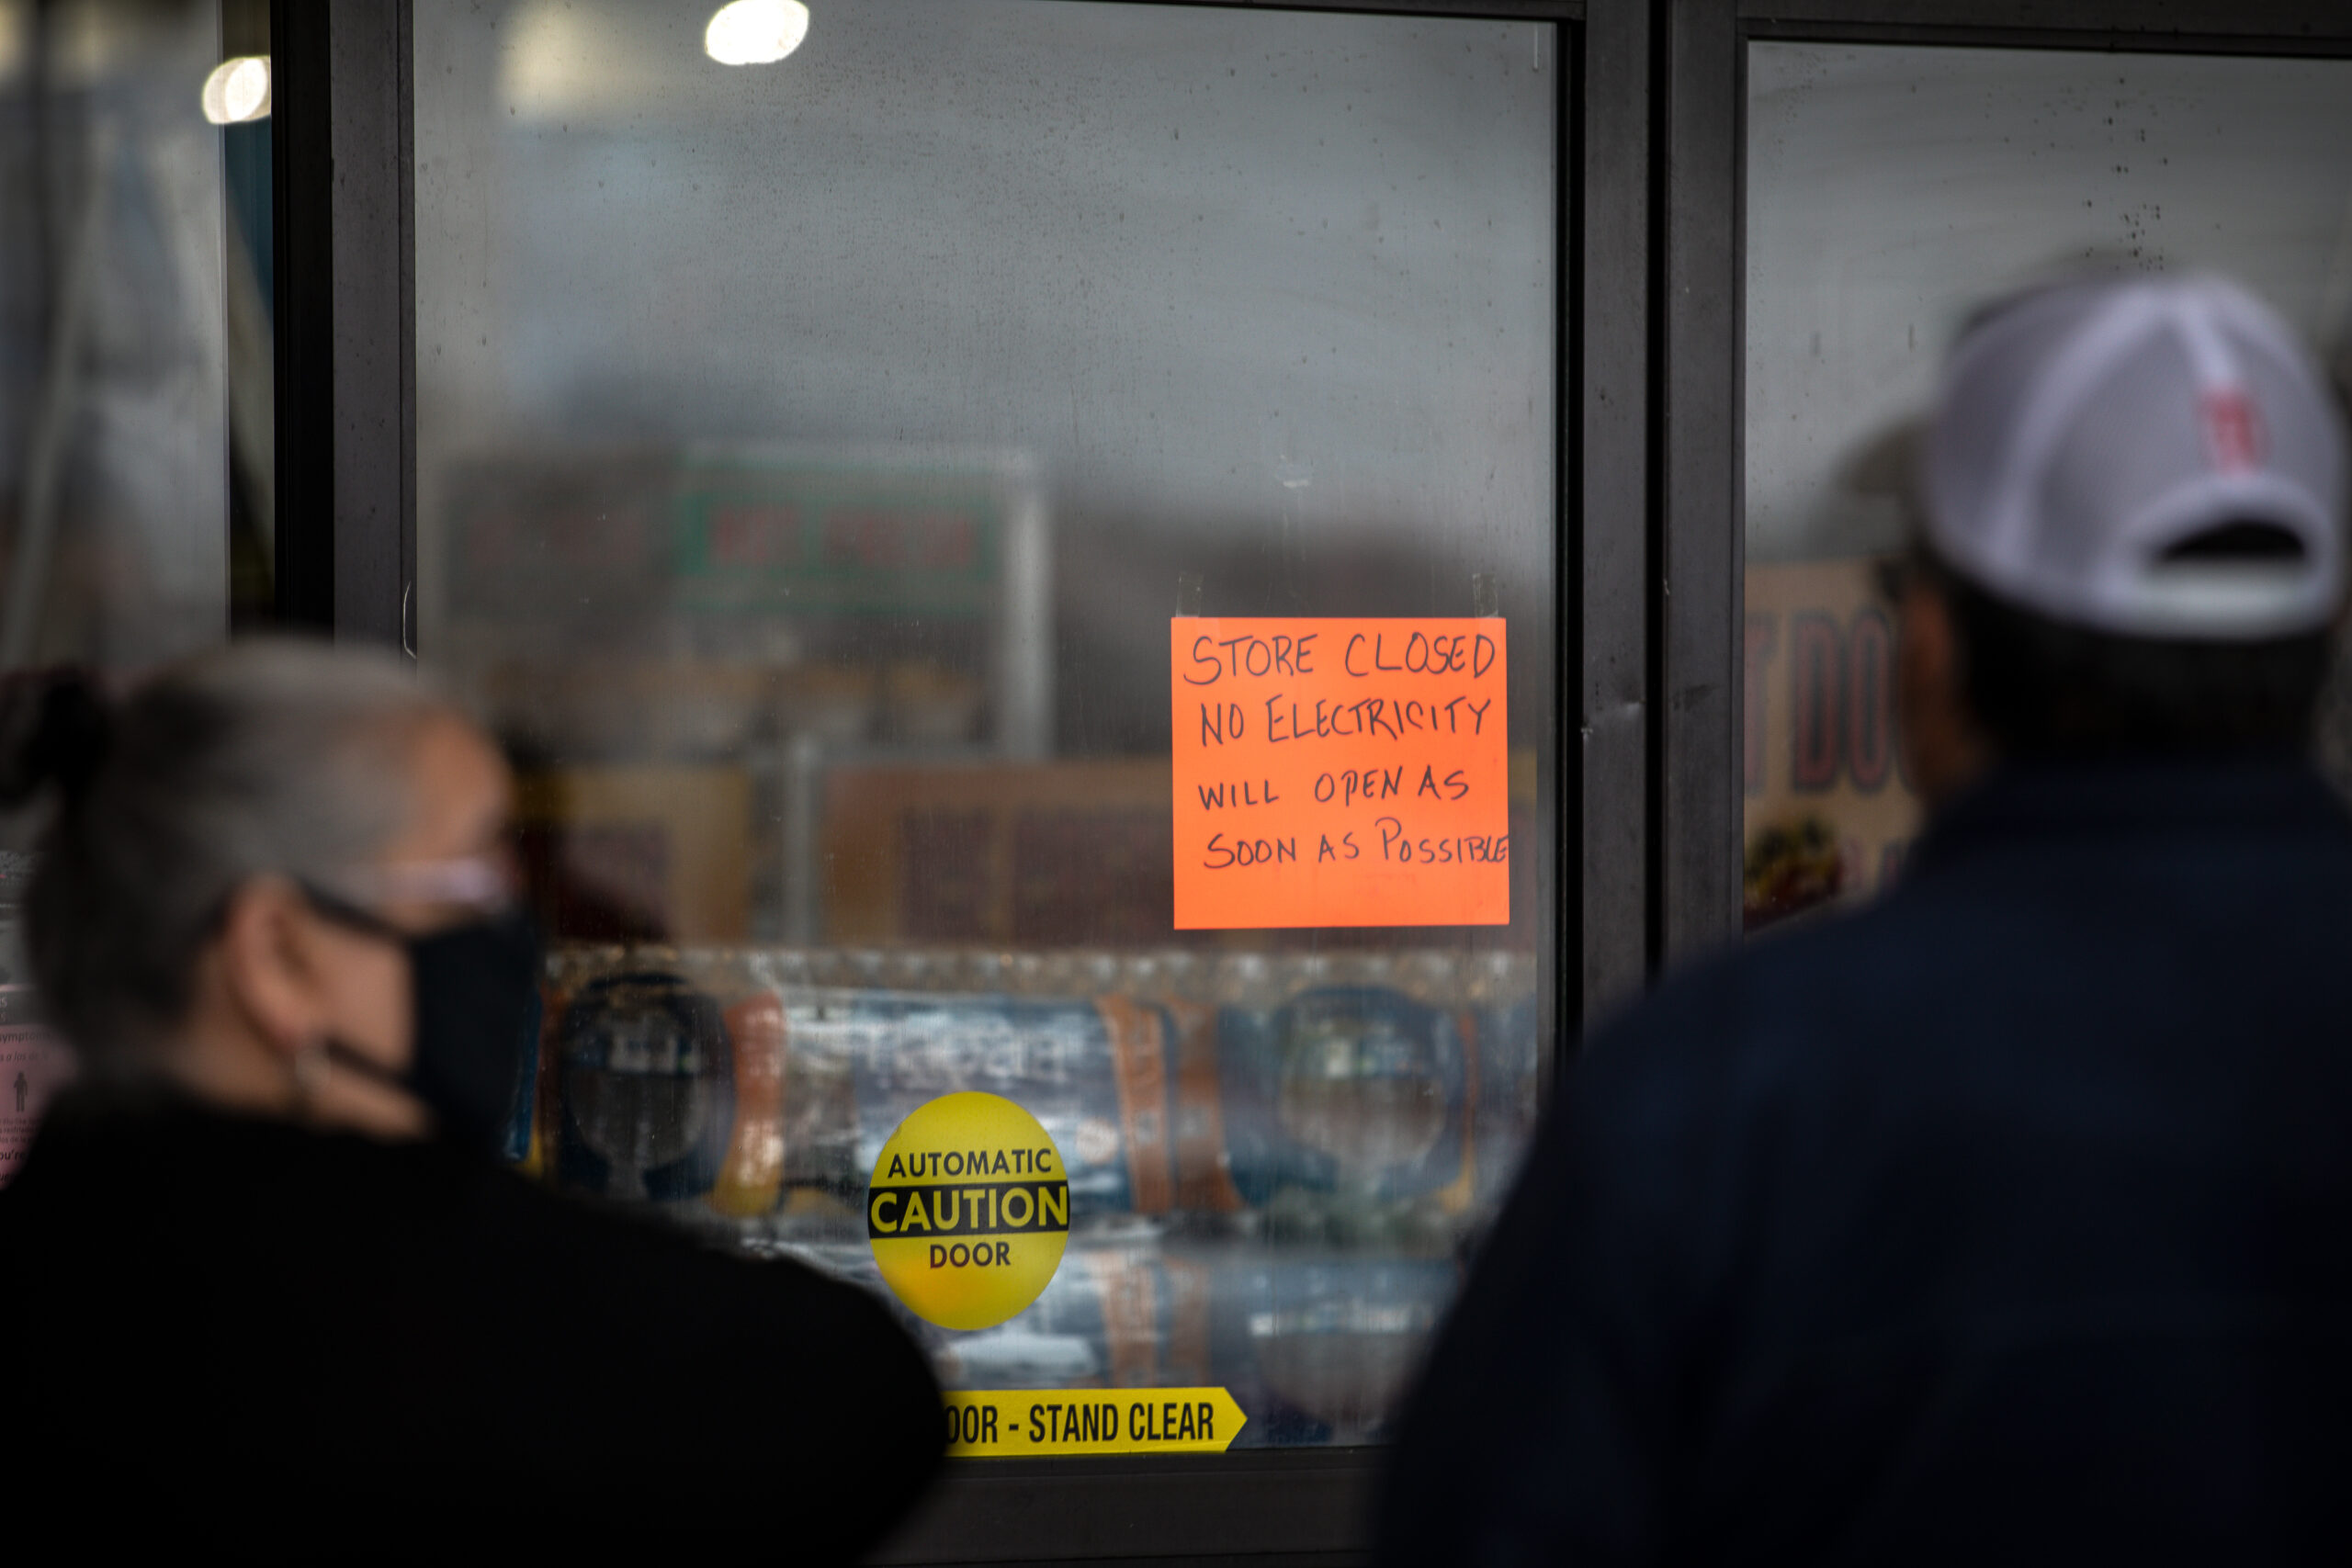 People wait in line for Fiesta Mart to open after the store lost electricity in Austin, Texas.